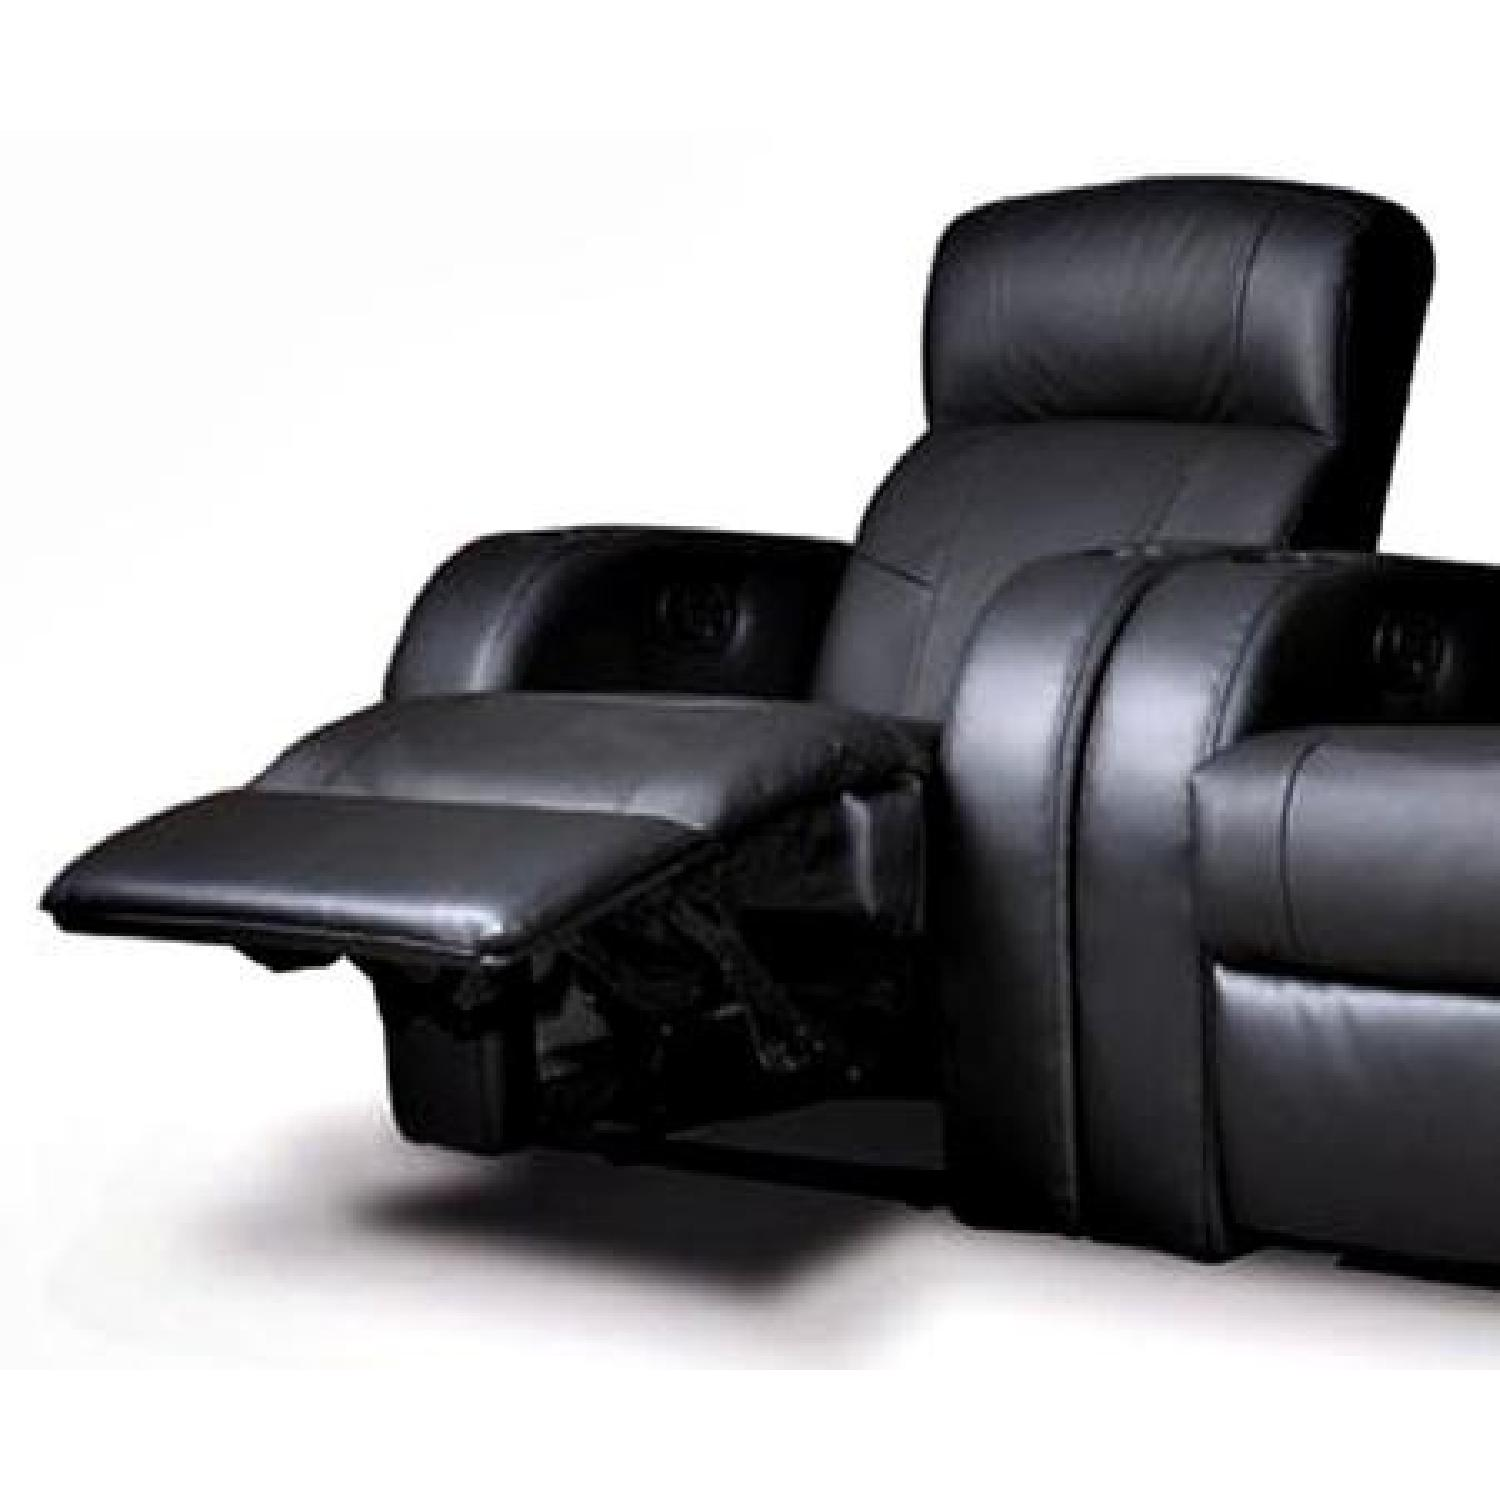 Recliner Chair in Black Leather Match w/ Cup-Holders-1